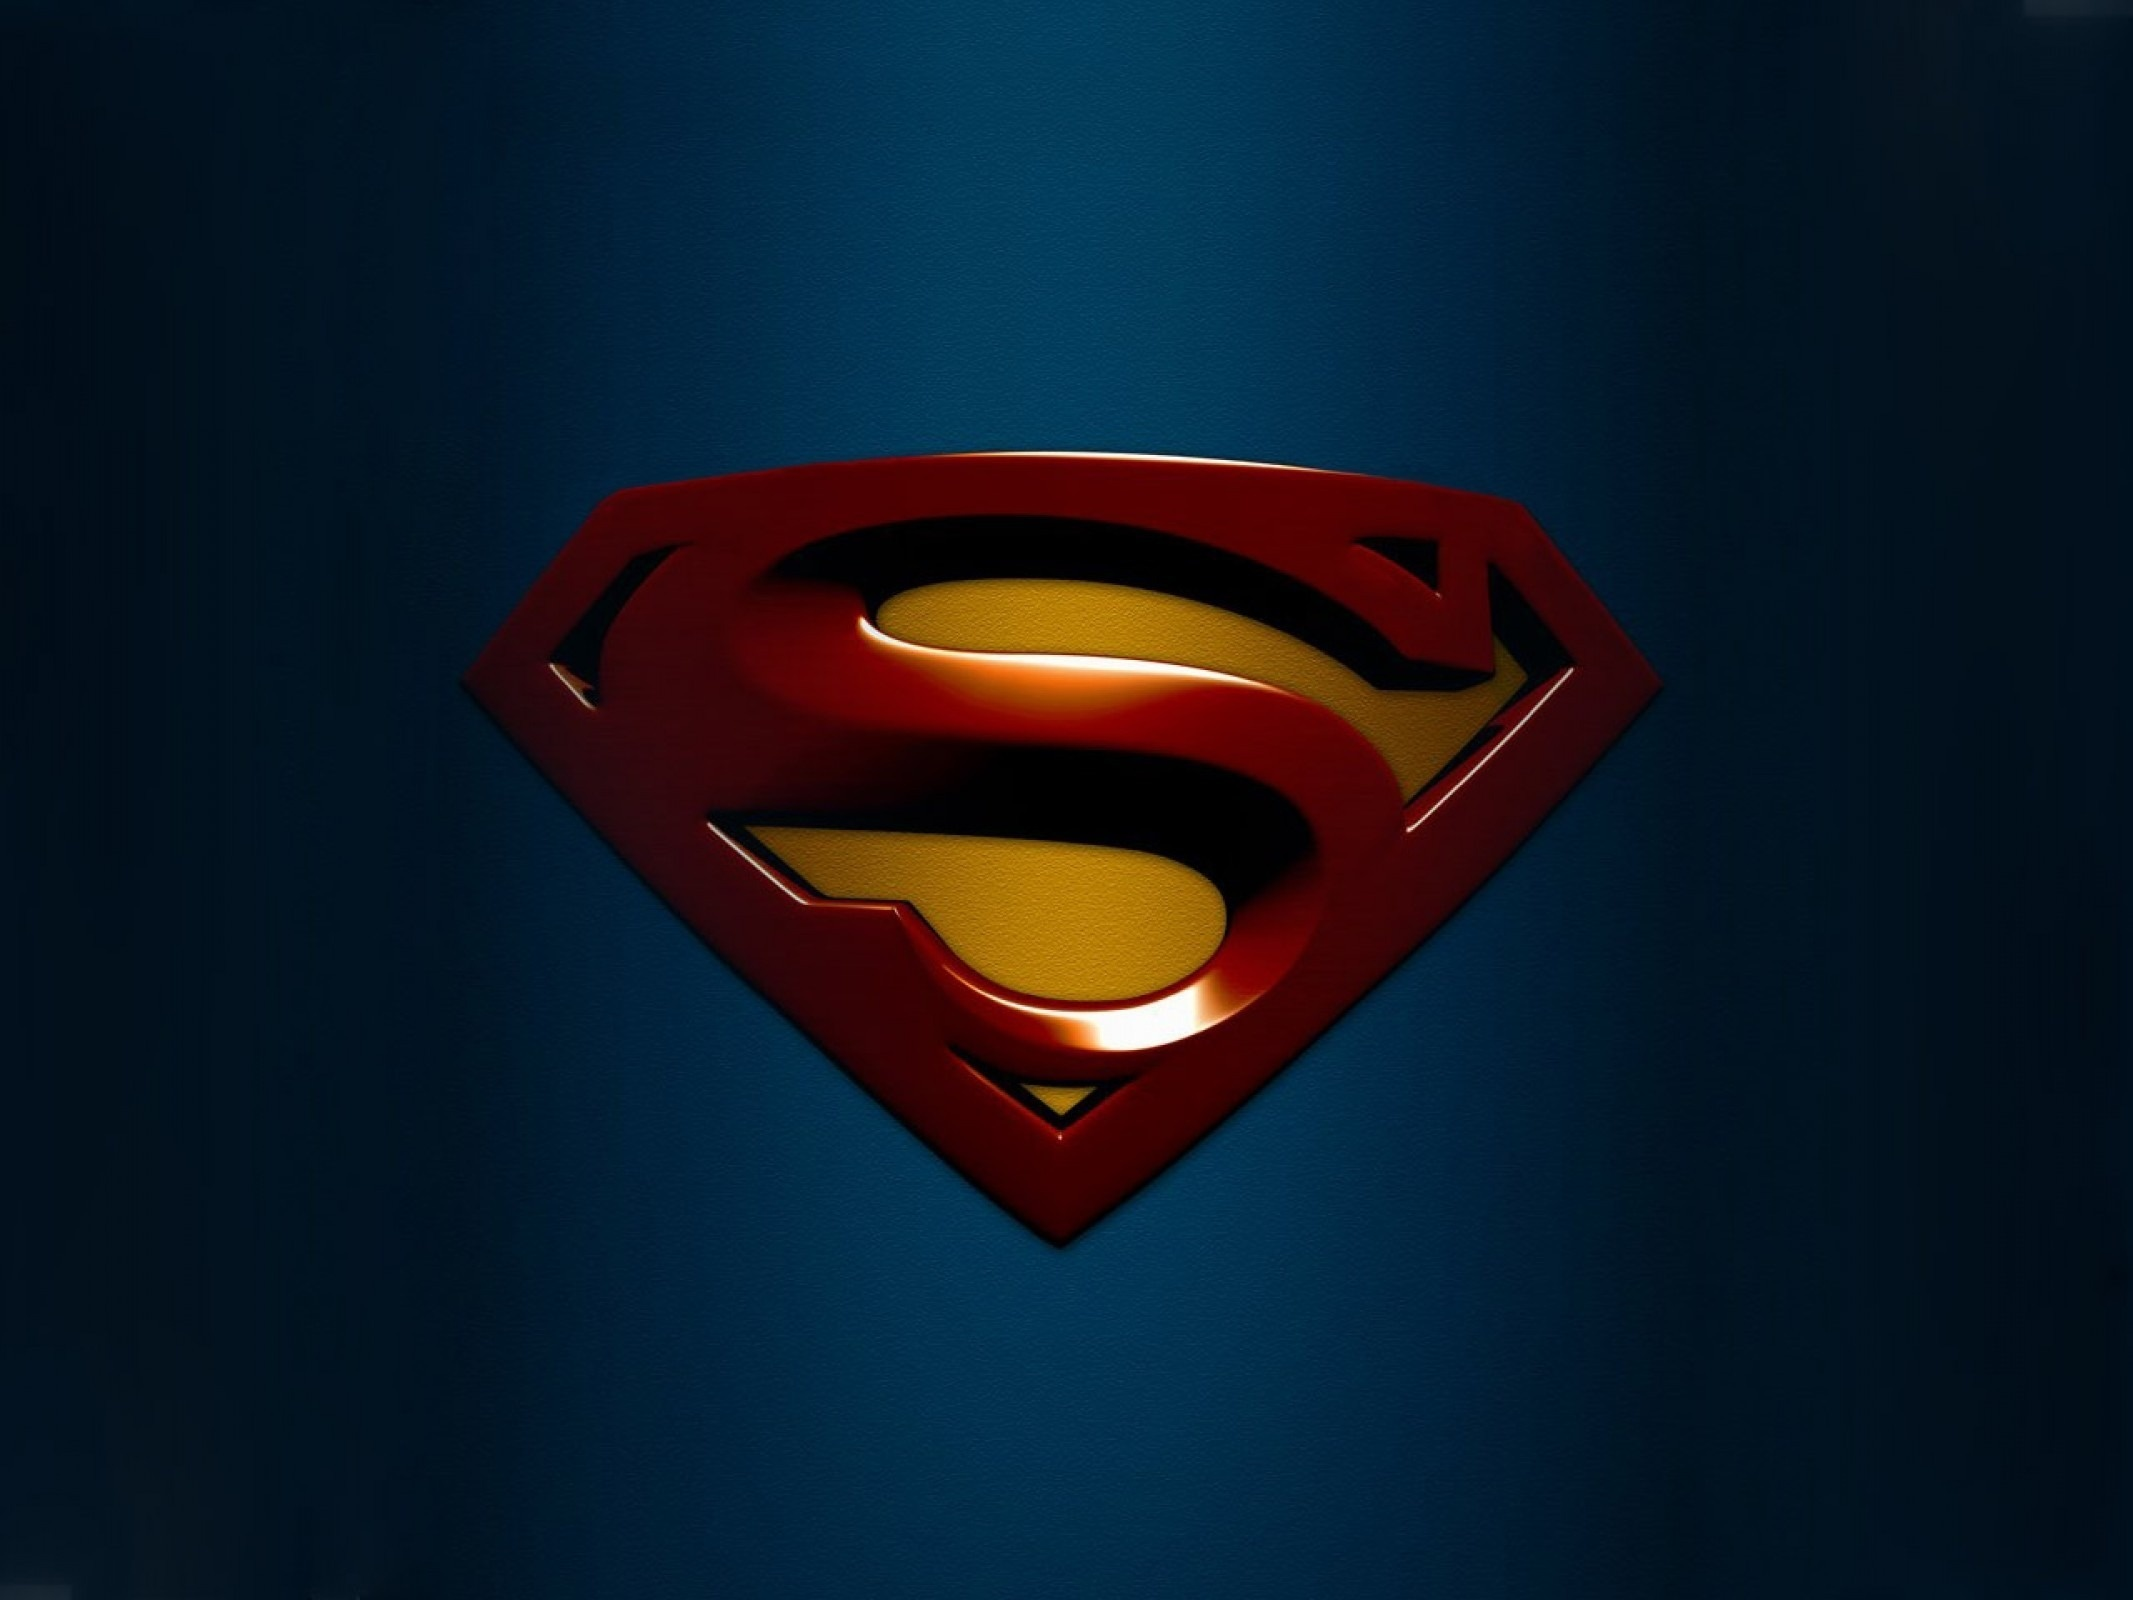 Wallpaper Superman logo graphics desktop wallpaper 3D GoodWP 2133x1600